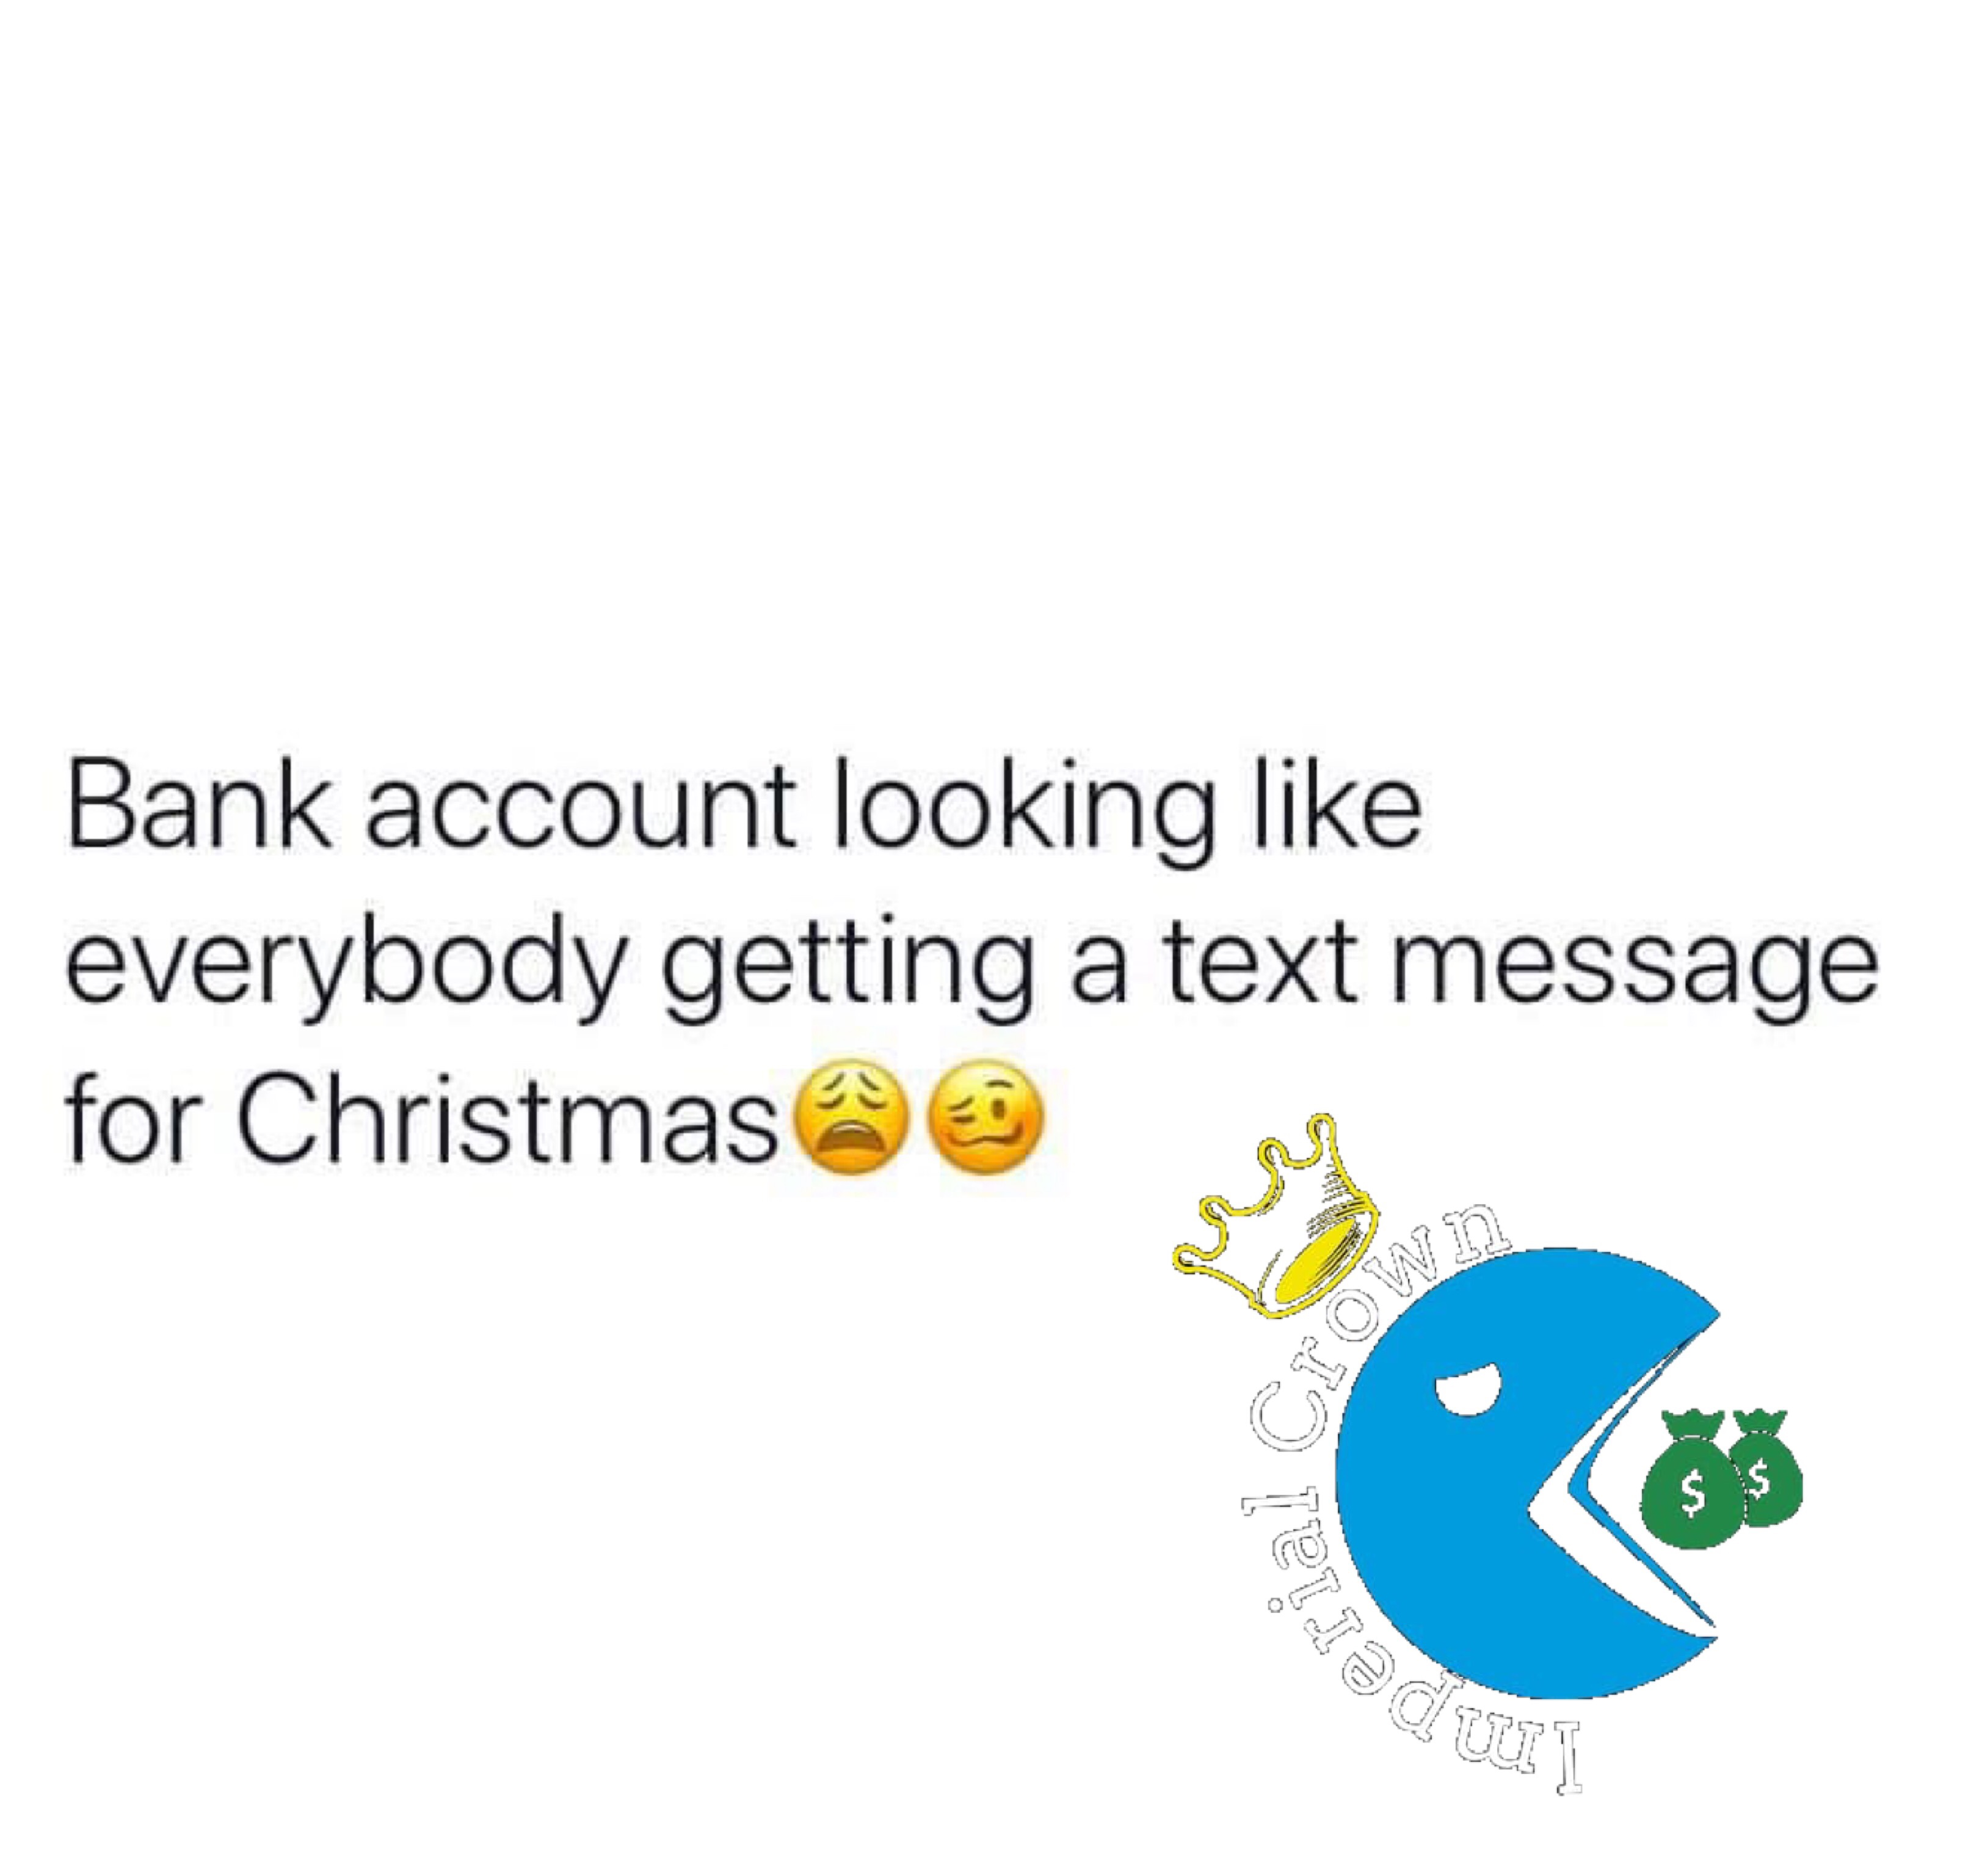 Bank account looking like everybody getting a text message for Christmas